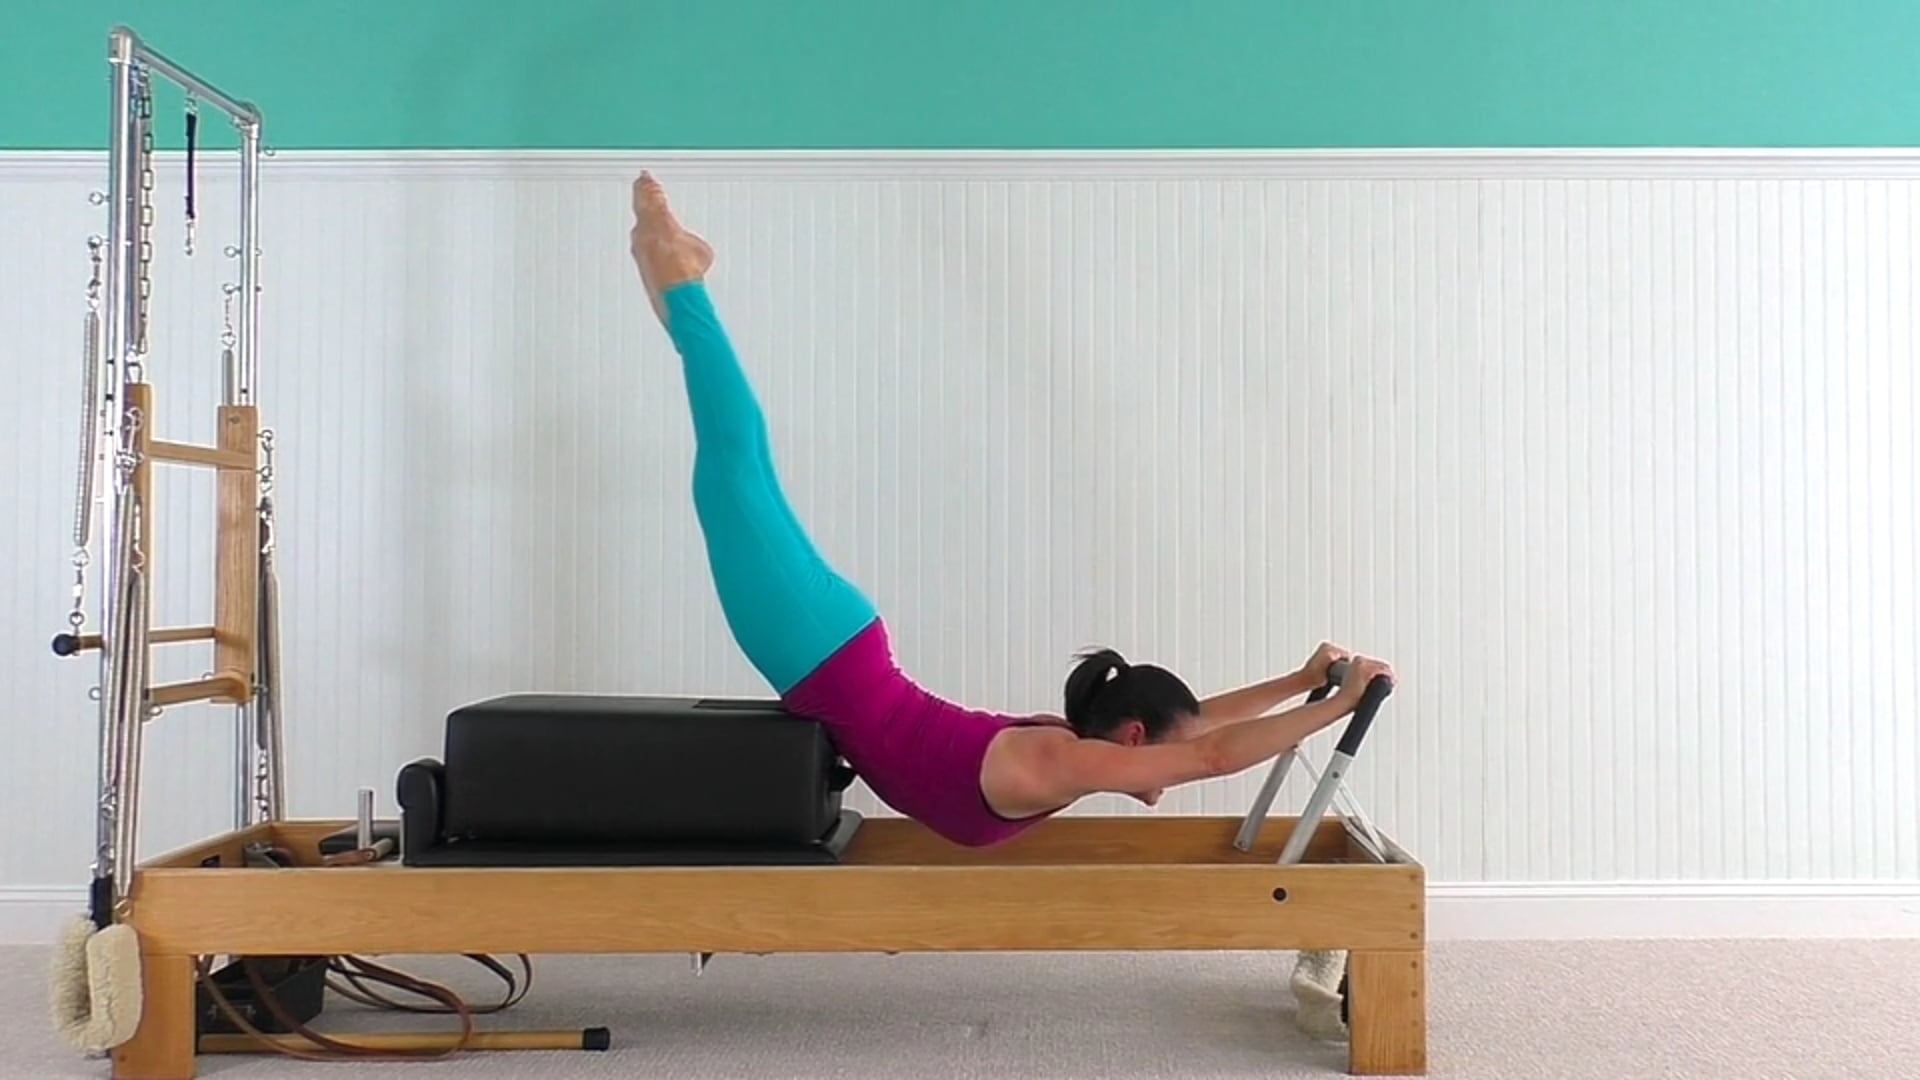 Reformer Workout Inspired by the Matwork